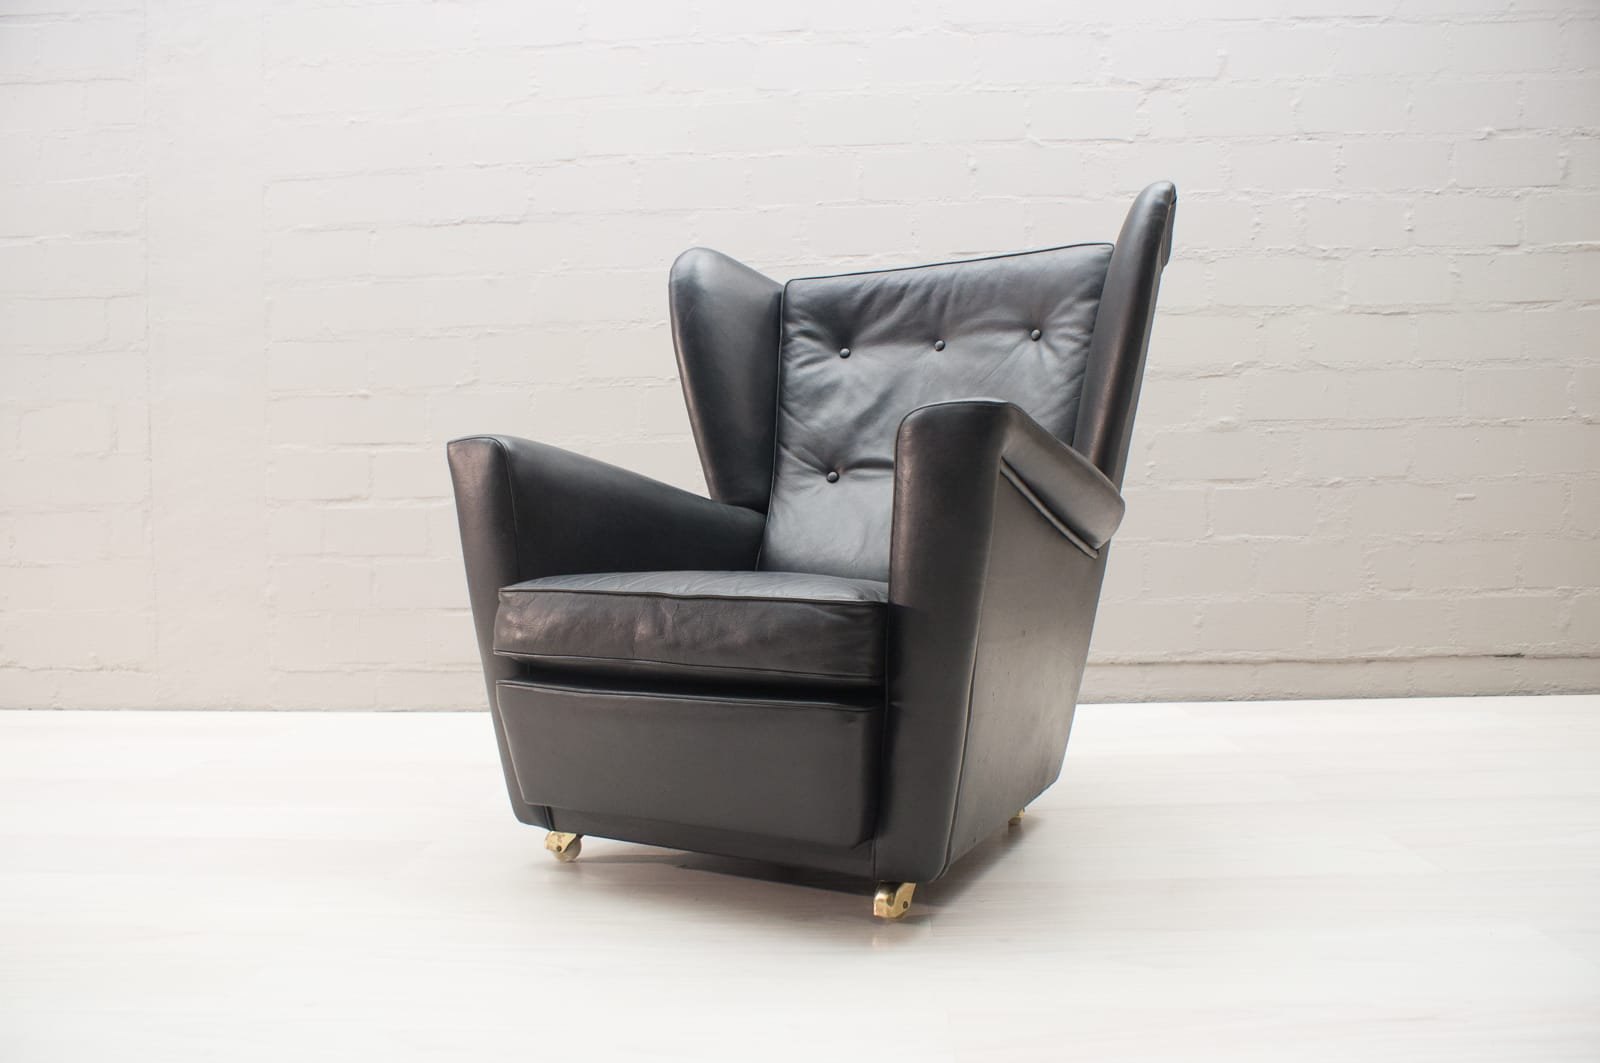 fauteuil oreilles mid century angleterre en vente sur pamono. Black Bedroom Furniture Sets. Home Design Ideas